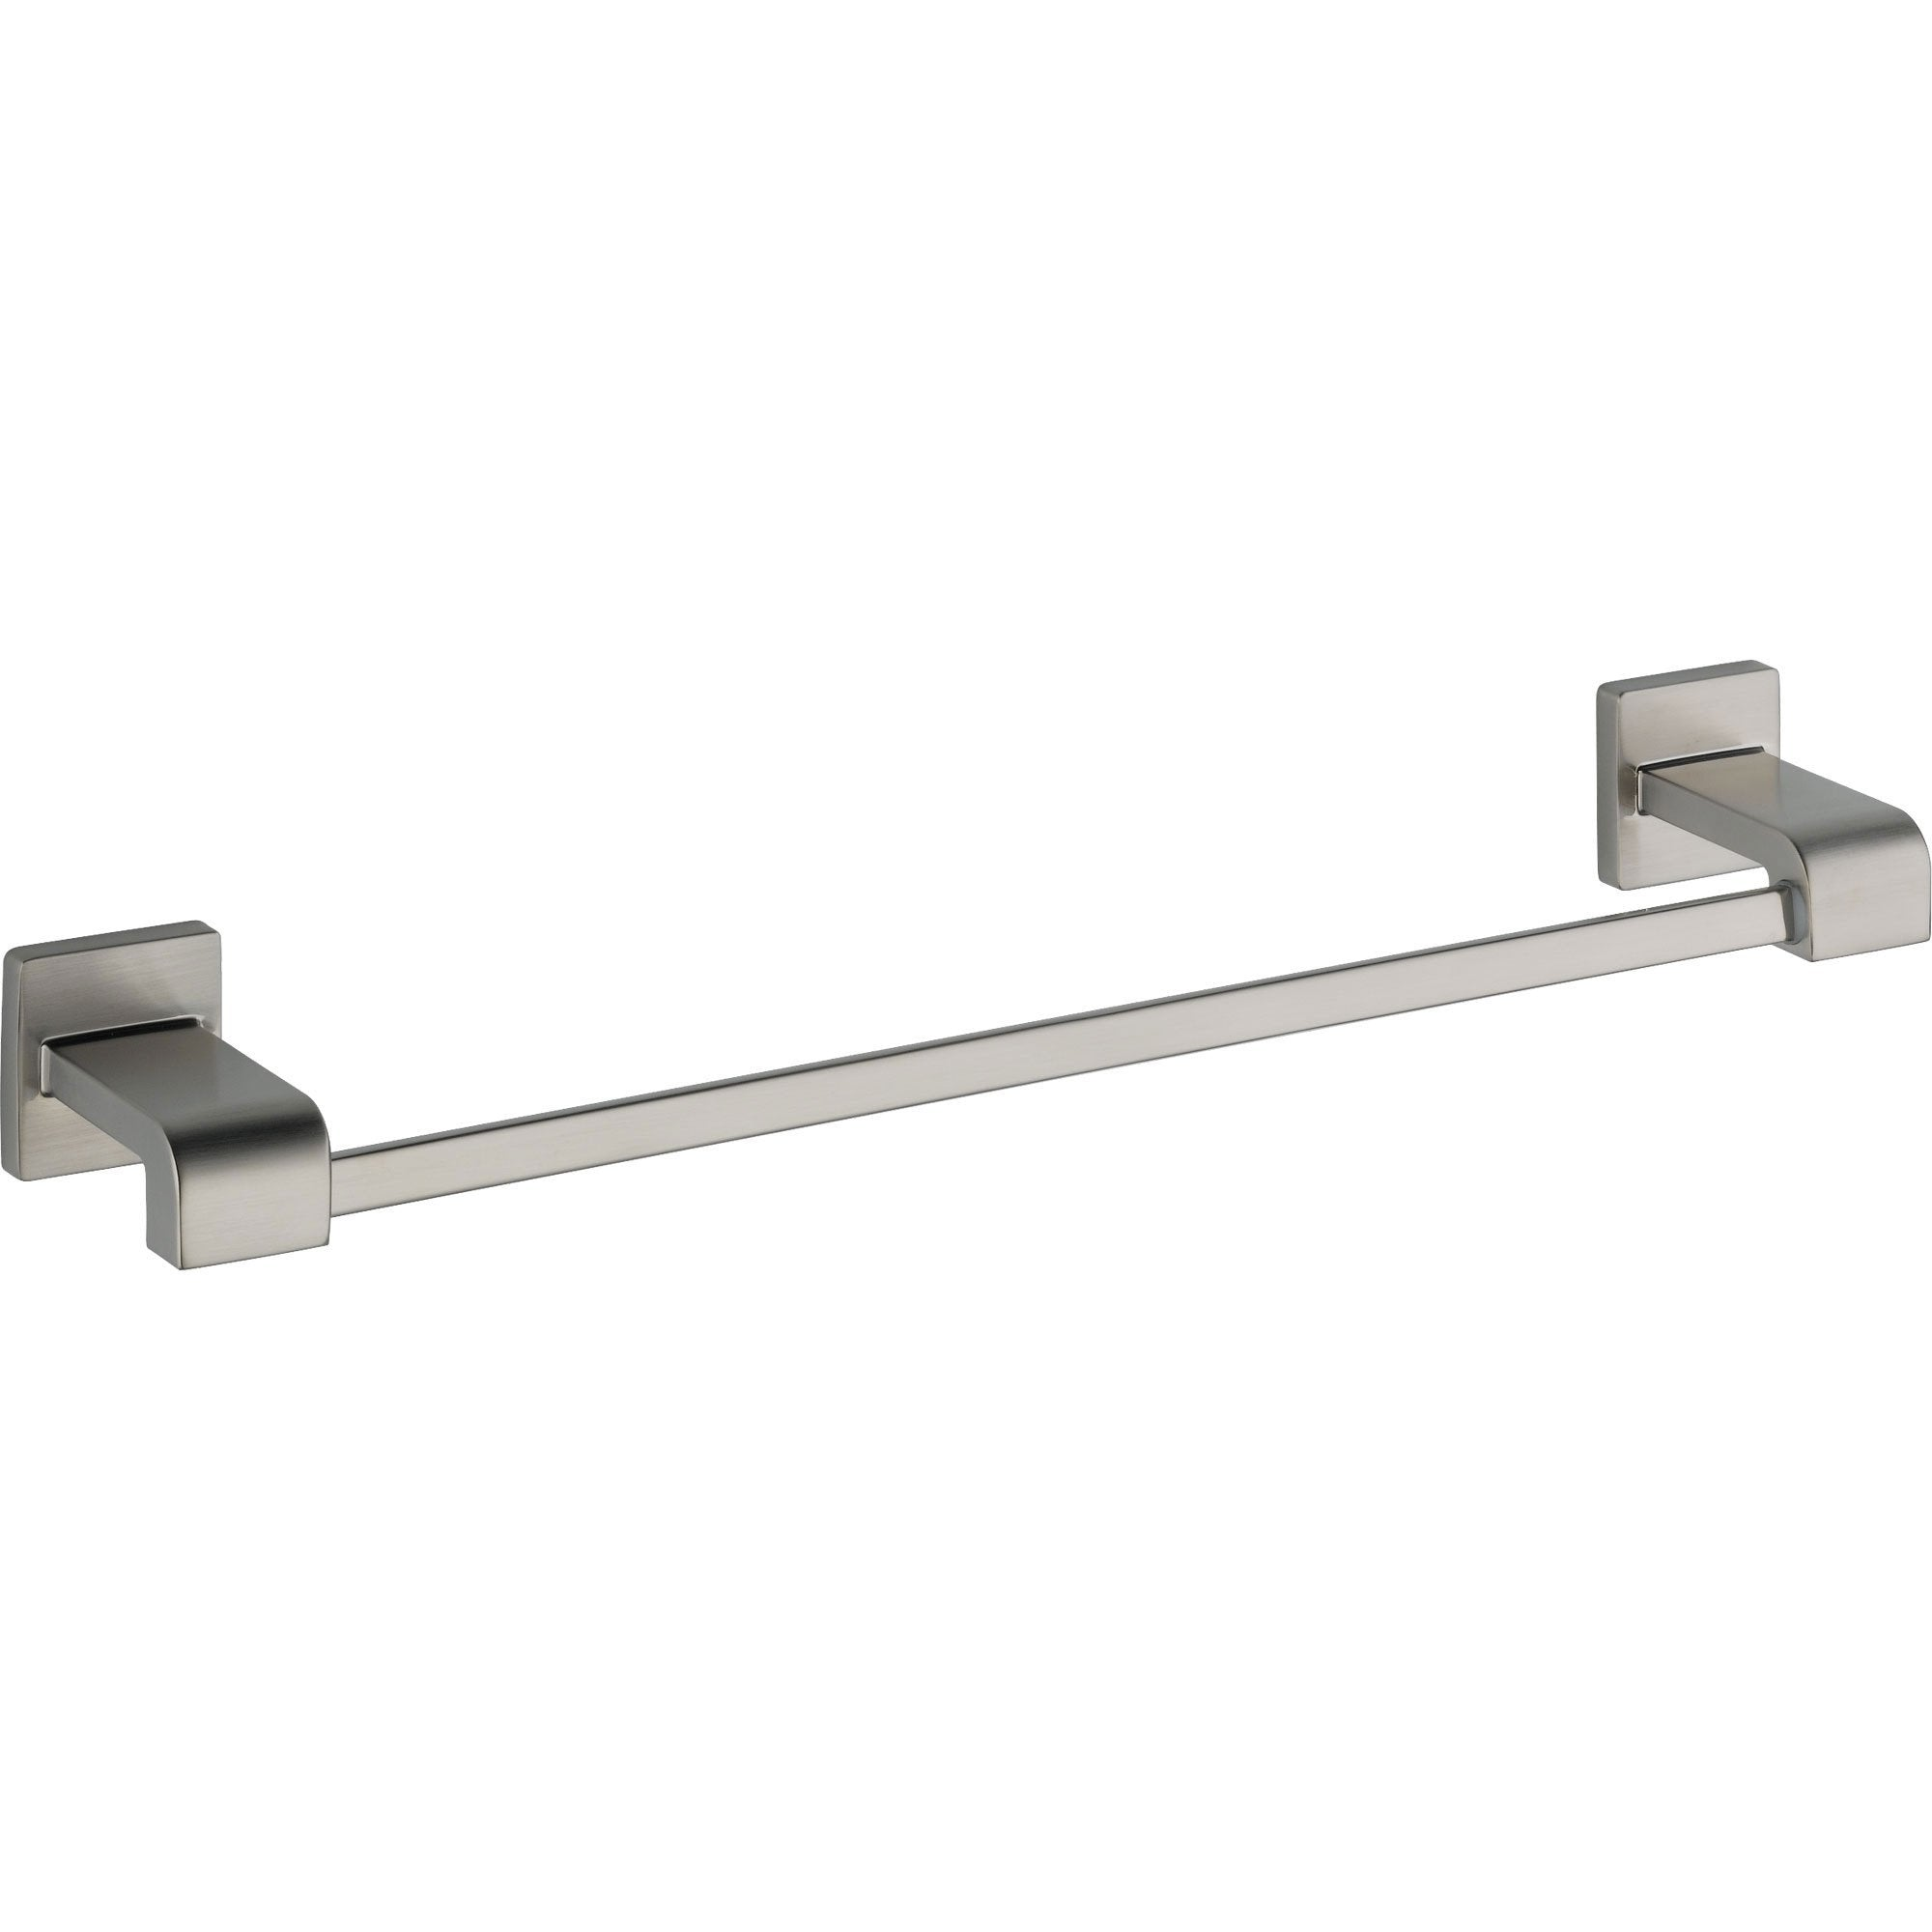 Delta Ara Modern 18 inch Stainless Steel Finish Single Towel Bar 353061